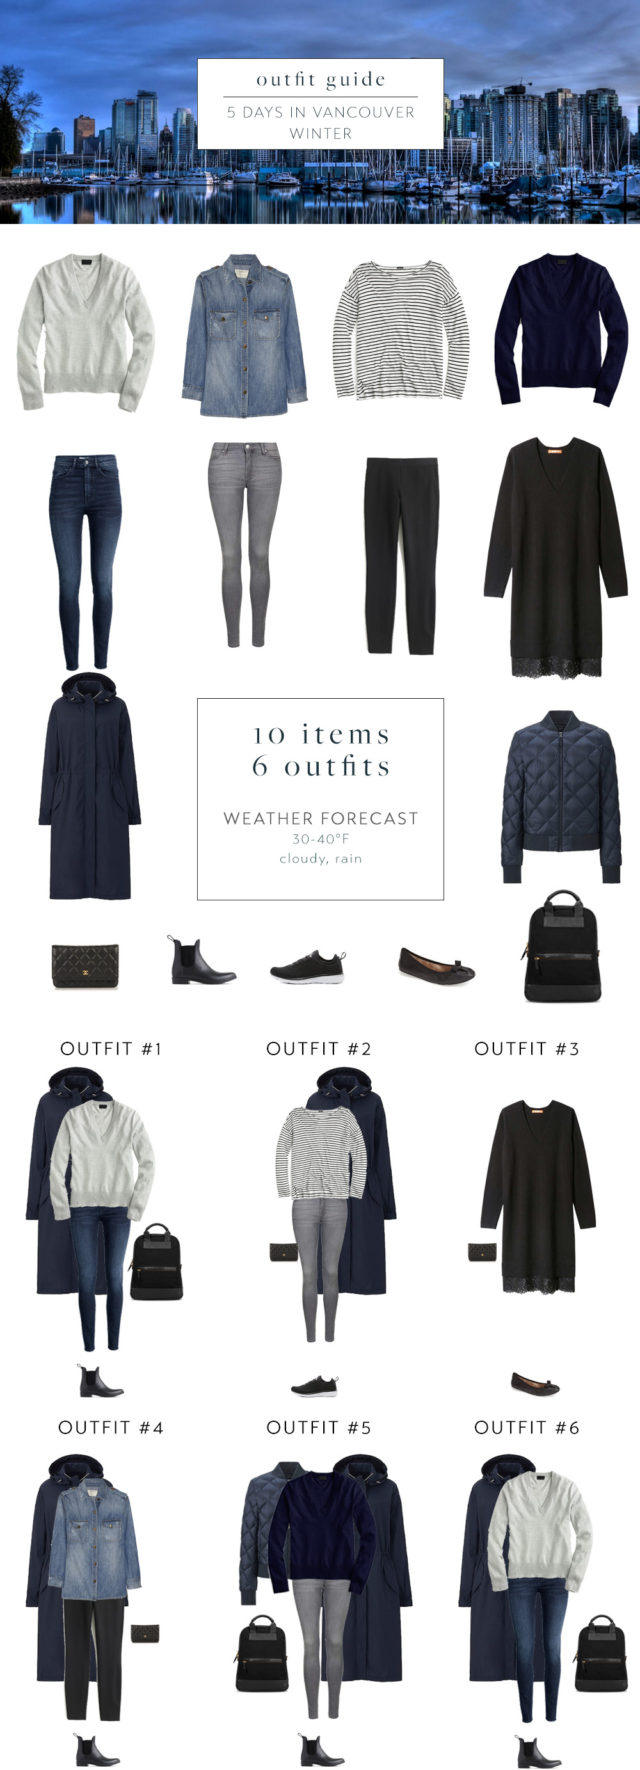 What To Pack And Wear For A Winter Trip To Vancouver, Canada